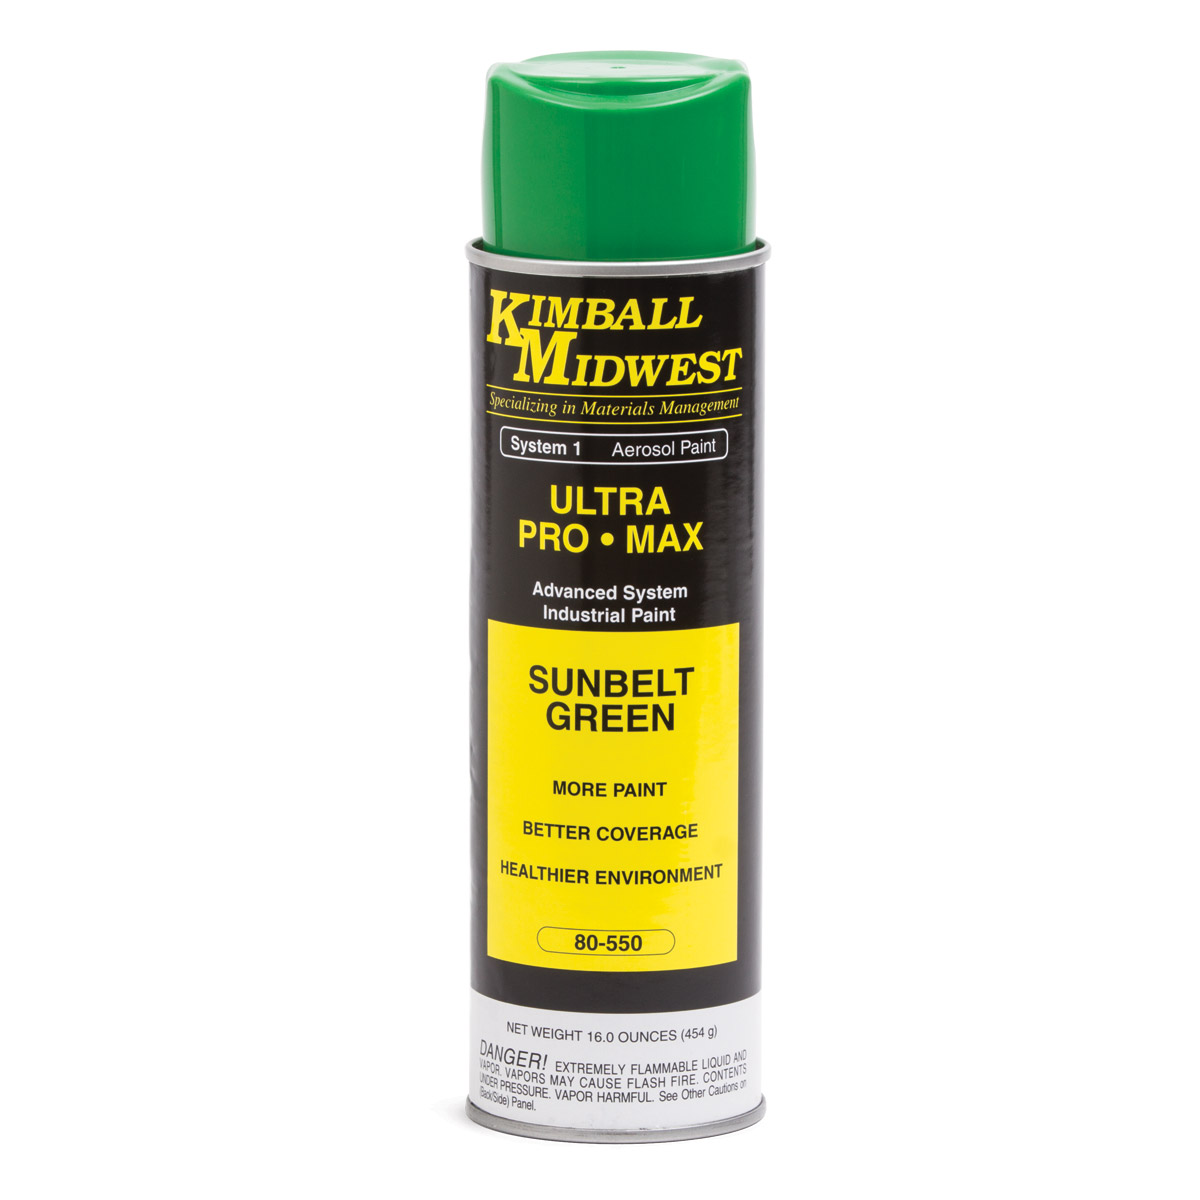 Sunbelt green ultra pro max paint kimball midwest Spray paint supplies